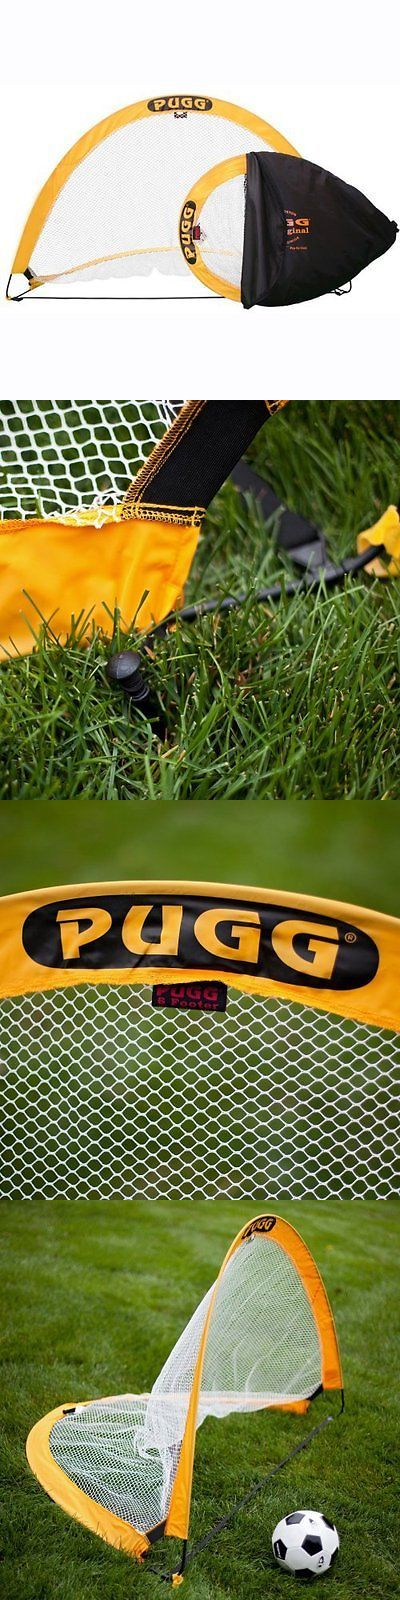 Goals and Nets 159180: 6 Ft. Pugg Soccer Goals BUY IT NOW ONLY: $49.93